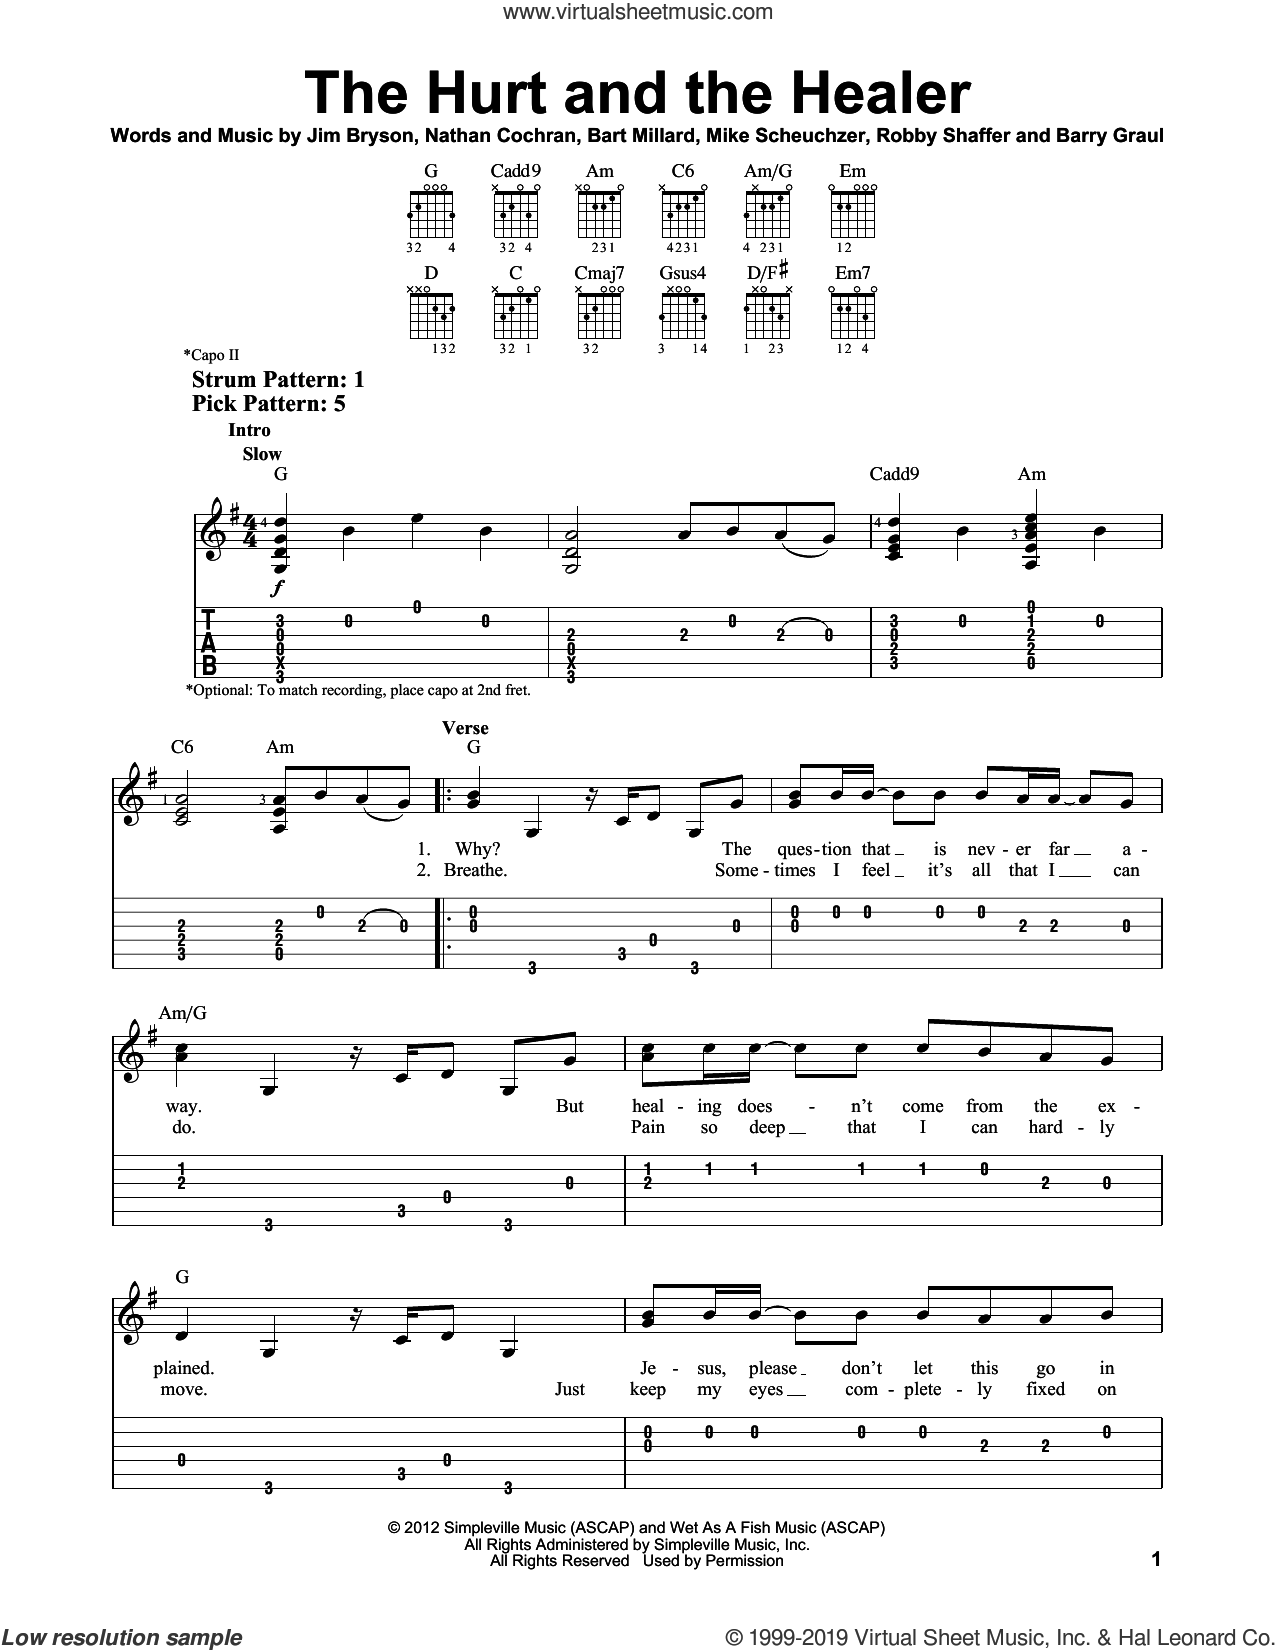 The Hurt And The Healer sheet music for guitar solo (easy tablature) by MercyMe, Barry Graul, Bart Millard, Jim Bryson, Mike Scheuchzer, Nathan Cochran and Robby Shaffer, easy guitar (easy tablature)